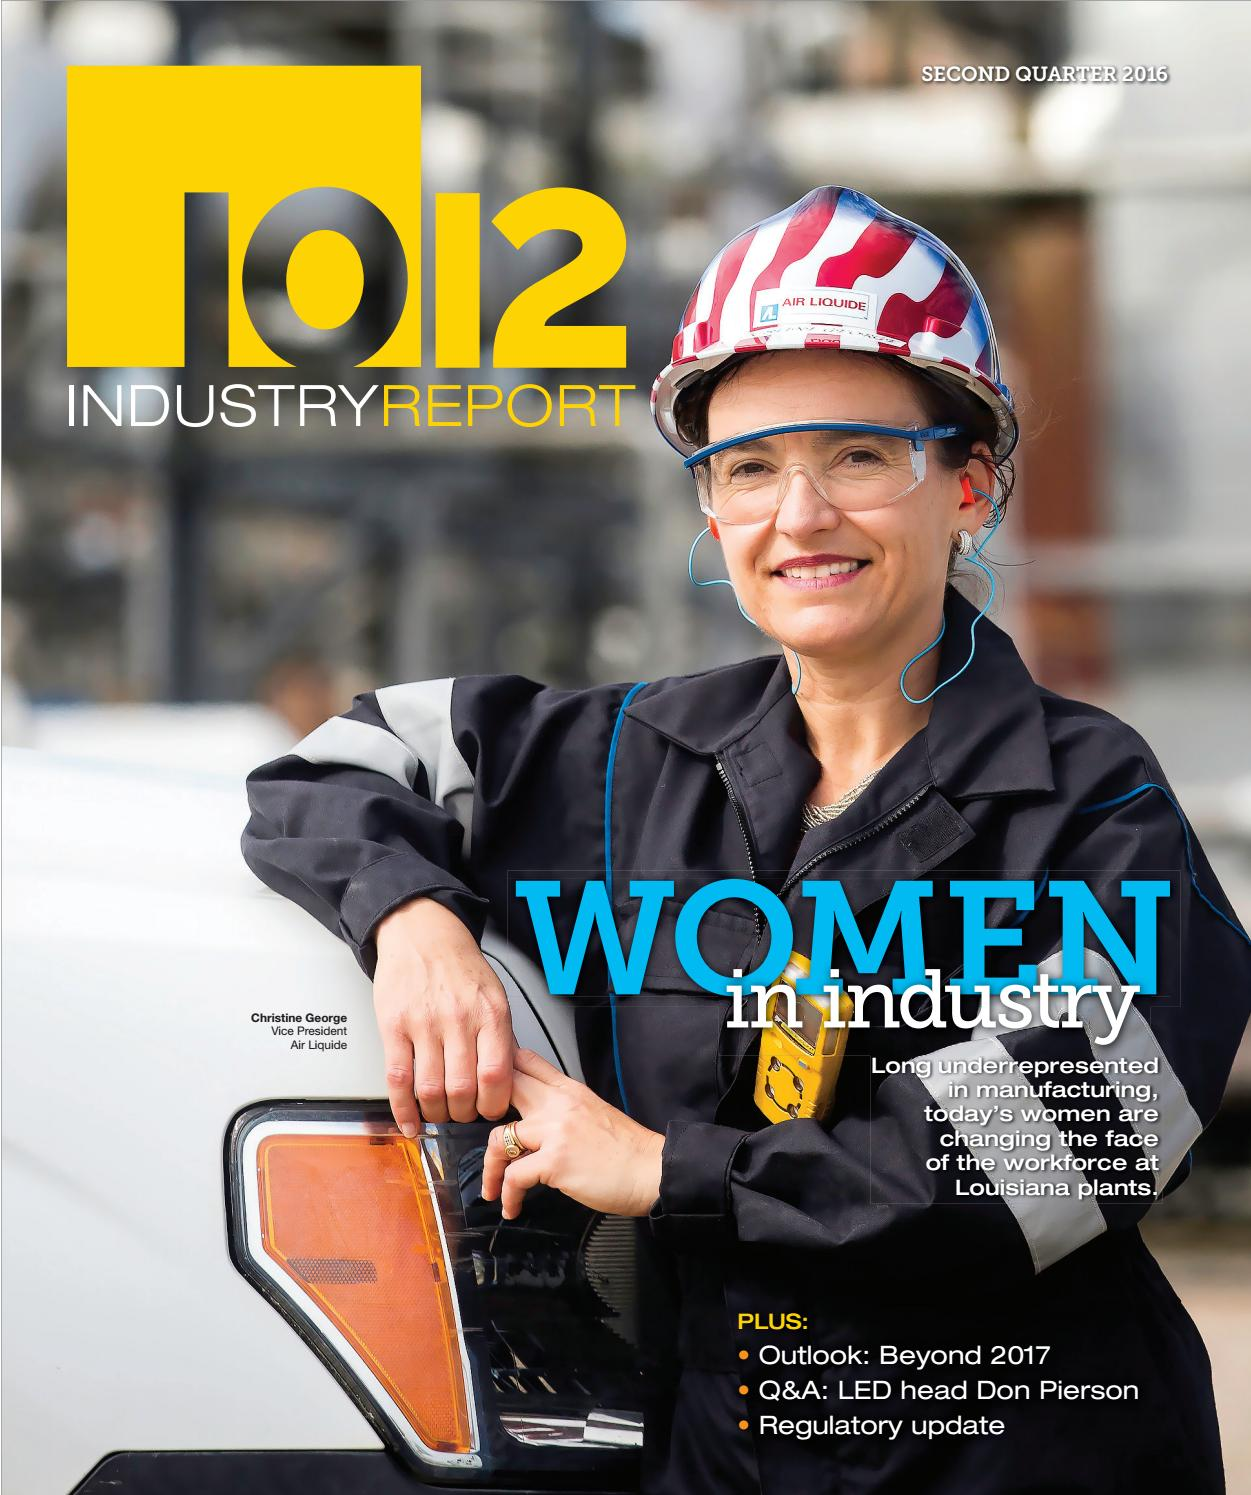 10/12 Industry Report [Q2 2016] by Baton Rouge Business